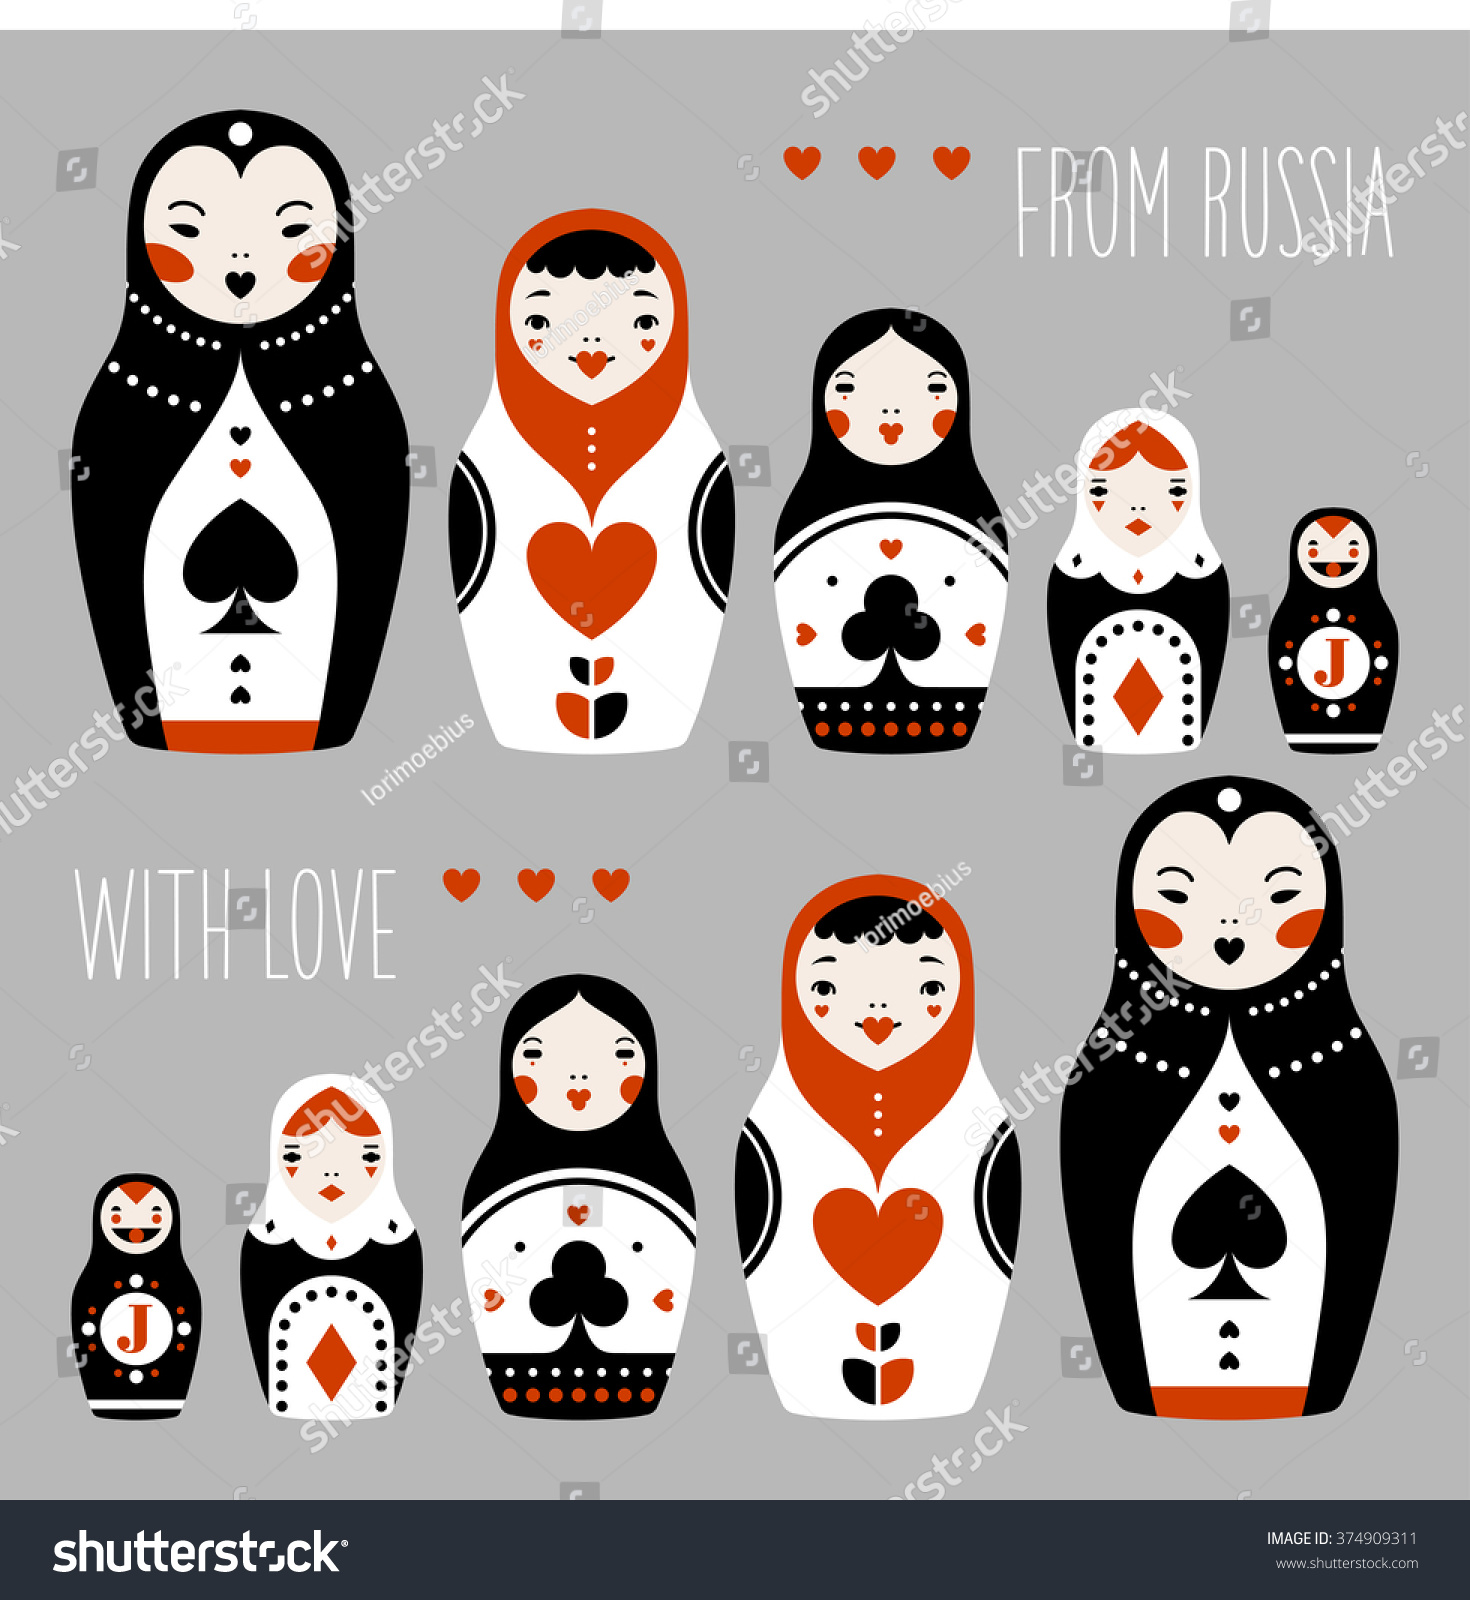 russia love matryoshka playing cards suits stock vector hd royalty